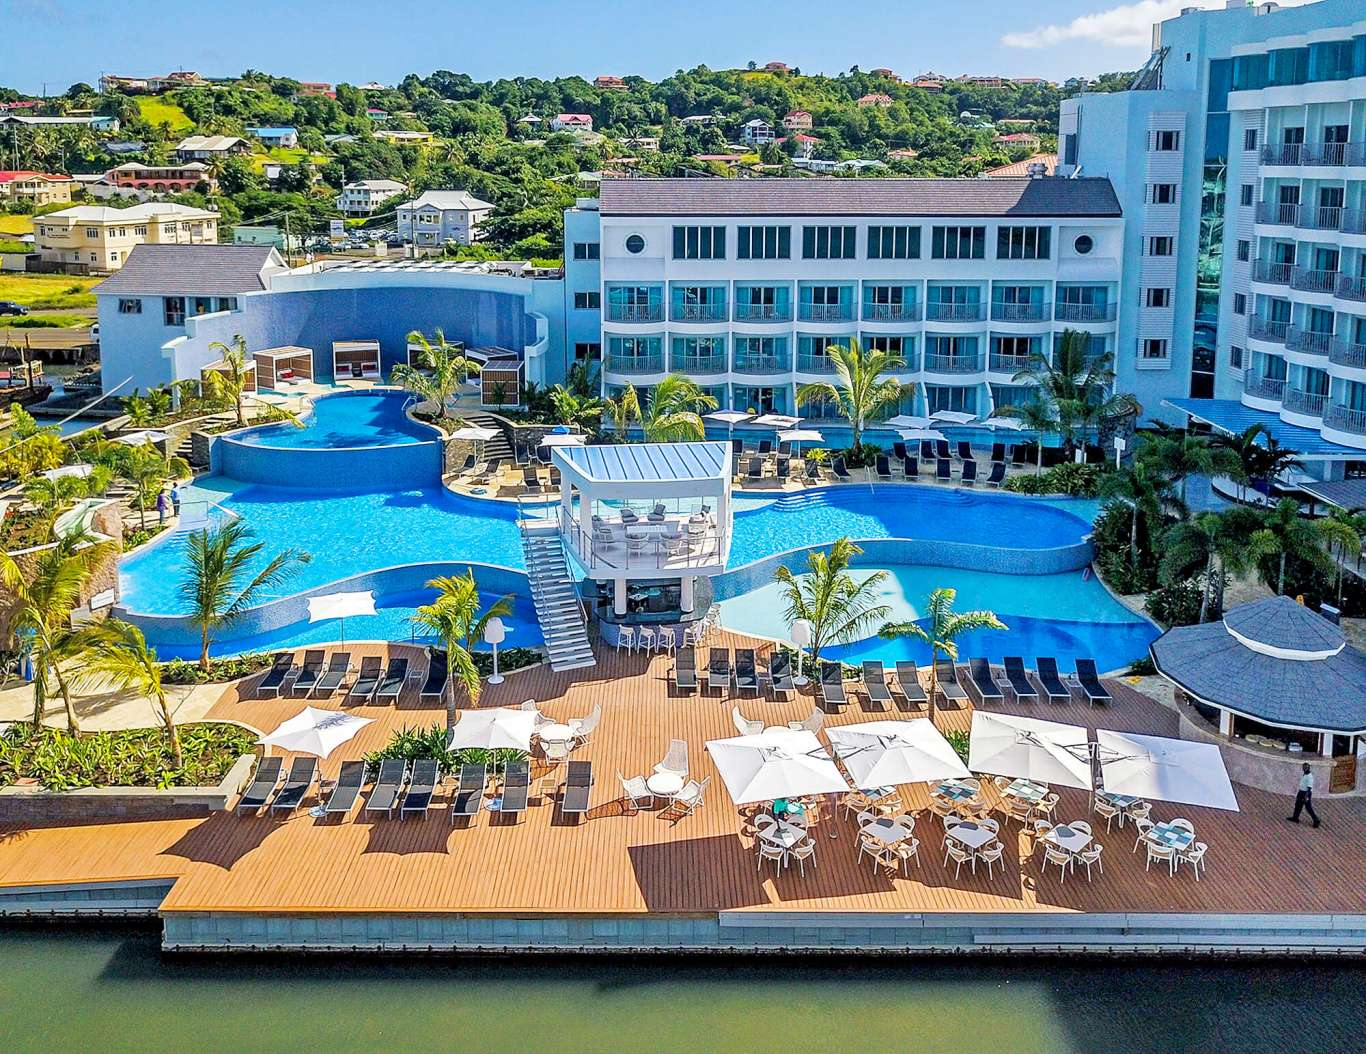 Image of Harbor Club, Gros Islet, St Lucia